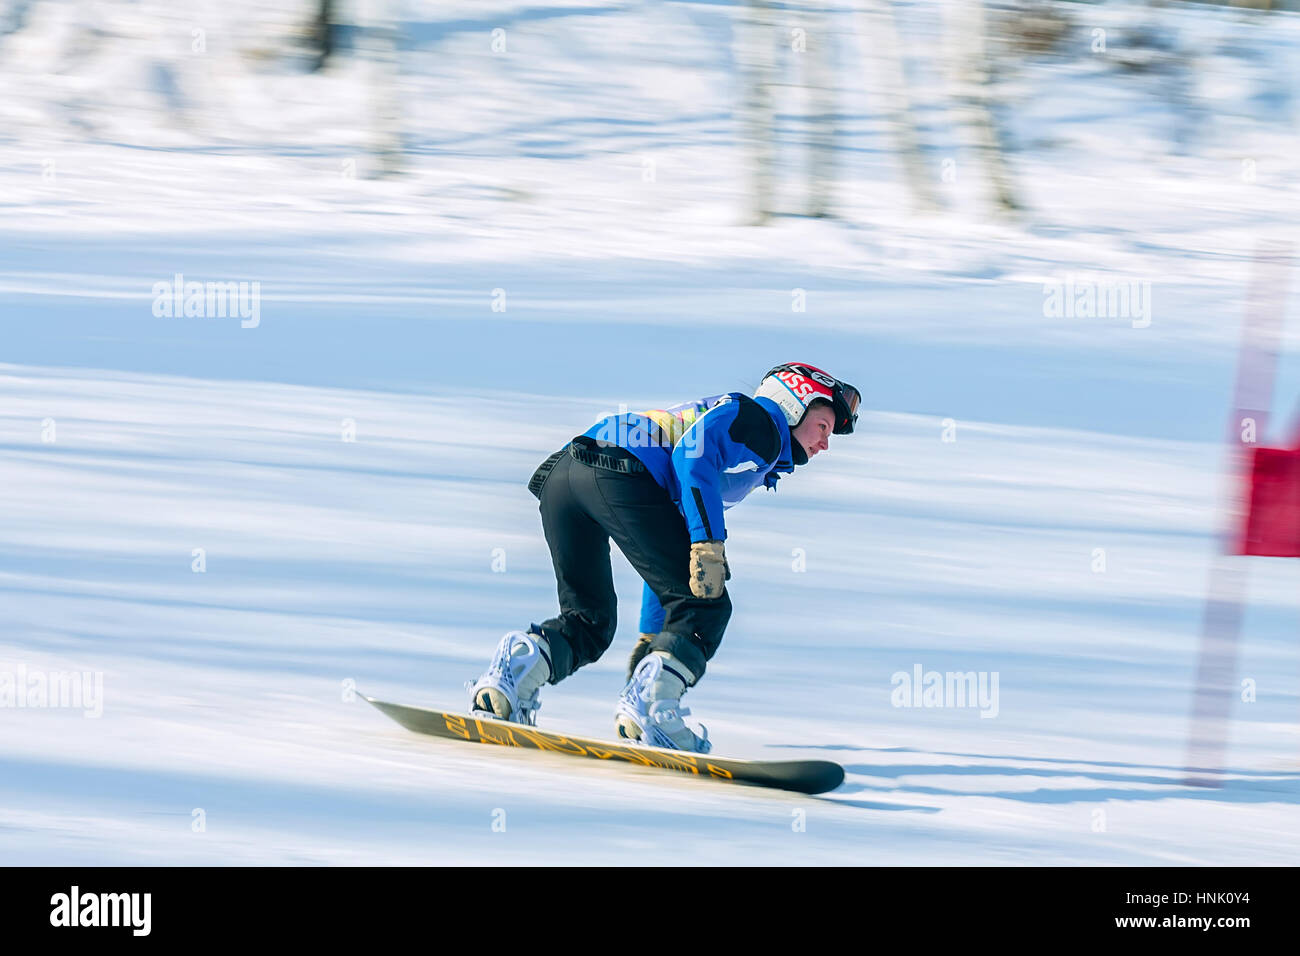 Irkutsk, Russia - February 12, 2017: Slalom competition snowboarding and skiing for adults and children in Irkutsk - Stock Image